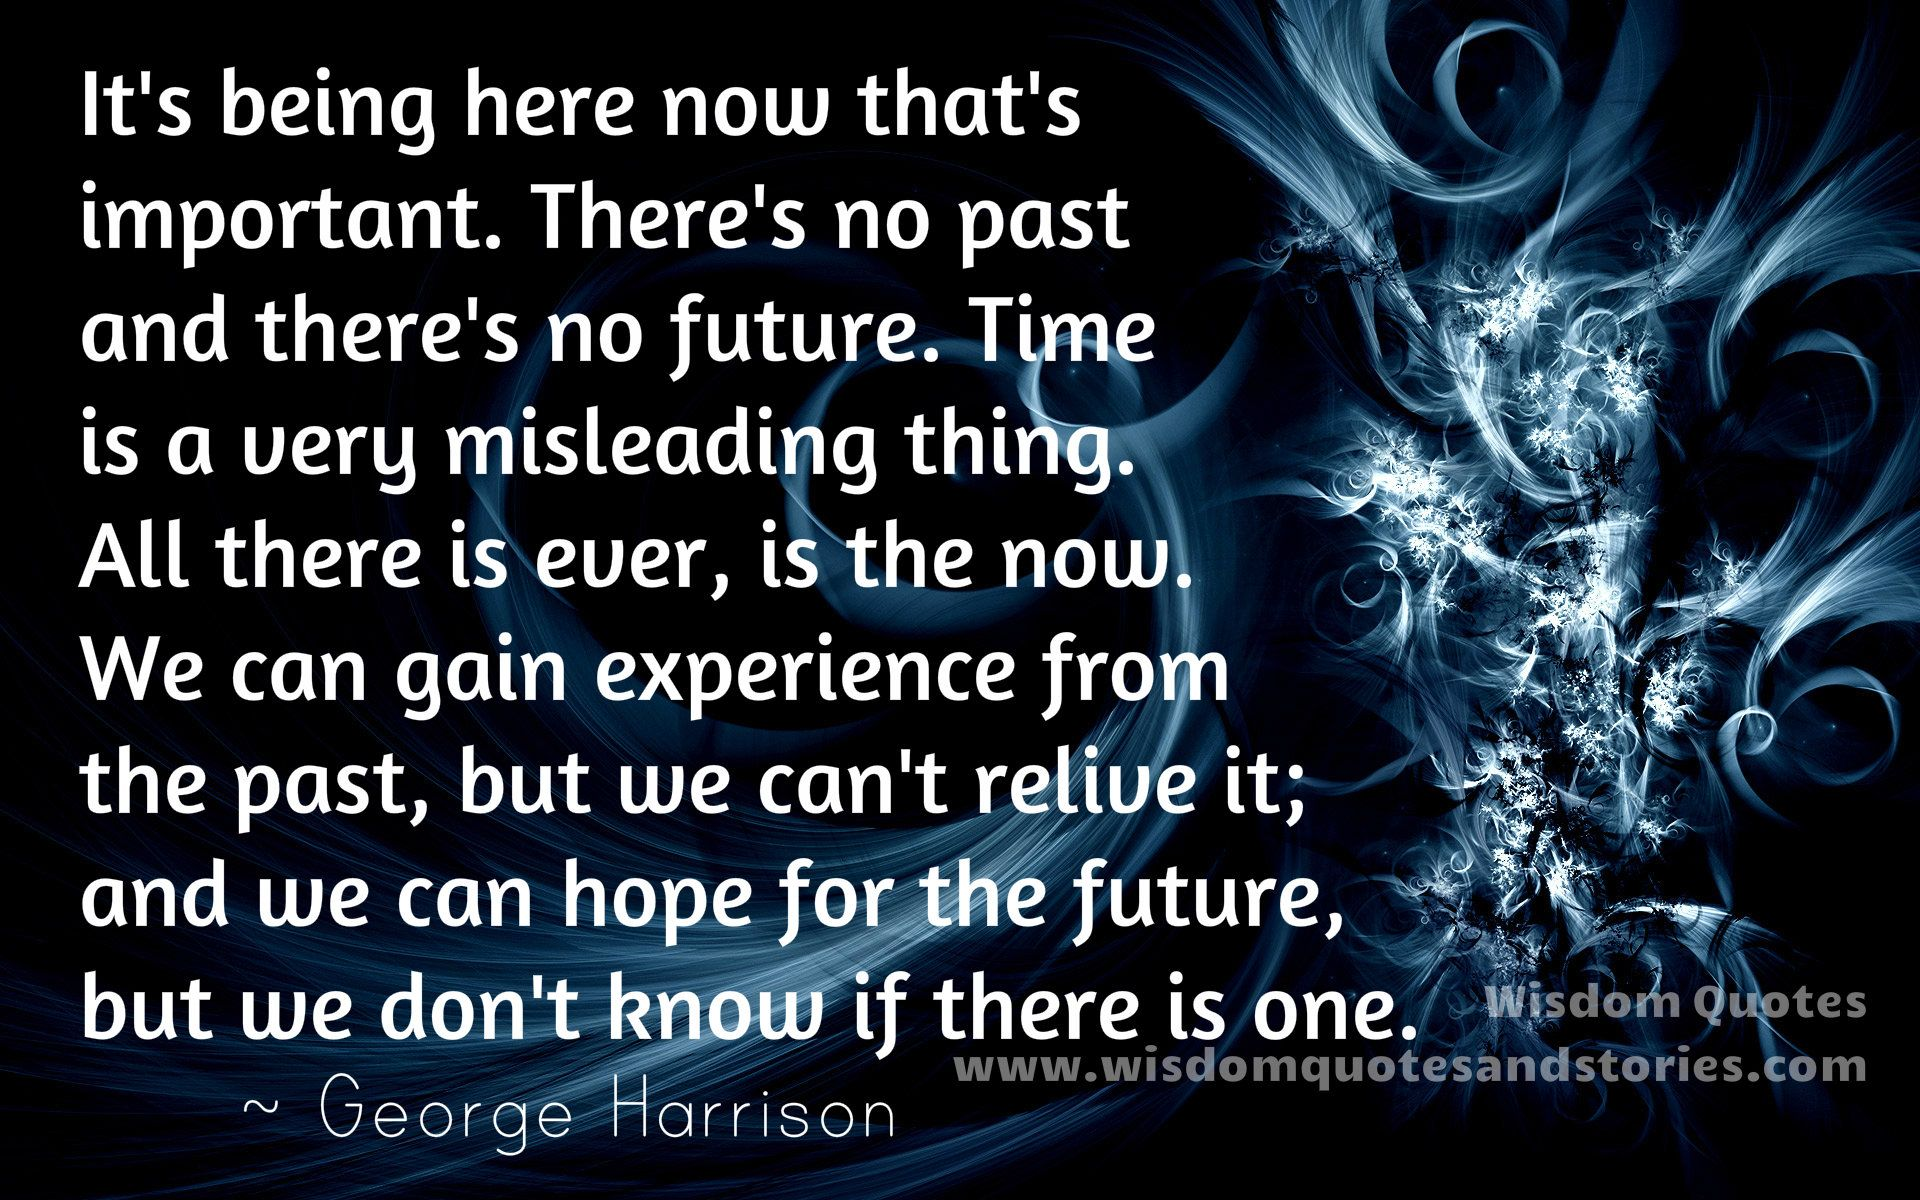 The Future Is Now Quote Wisdom Quotes And Stories  It's Being Here Now That's